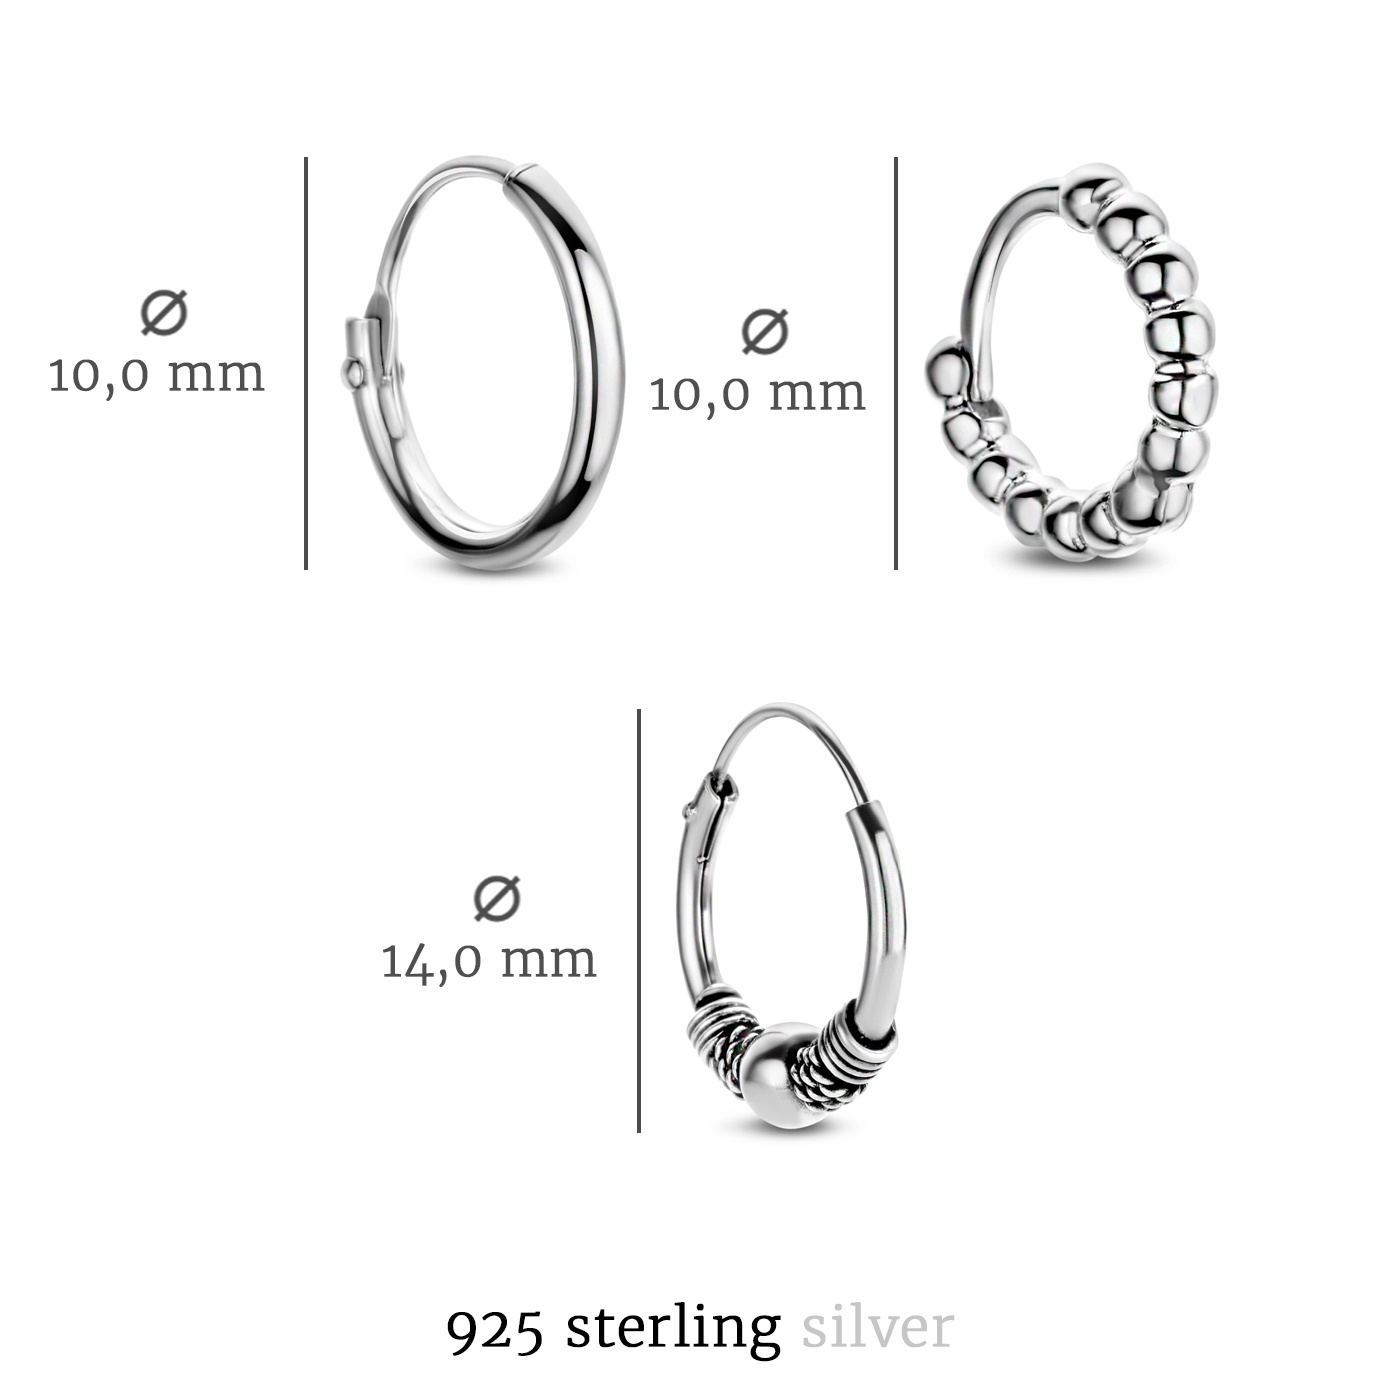 Selected Jewels Selected Gifts 925 sterling silver earrings set of 3 pairs of hoop earrings